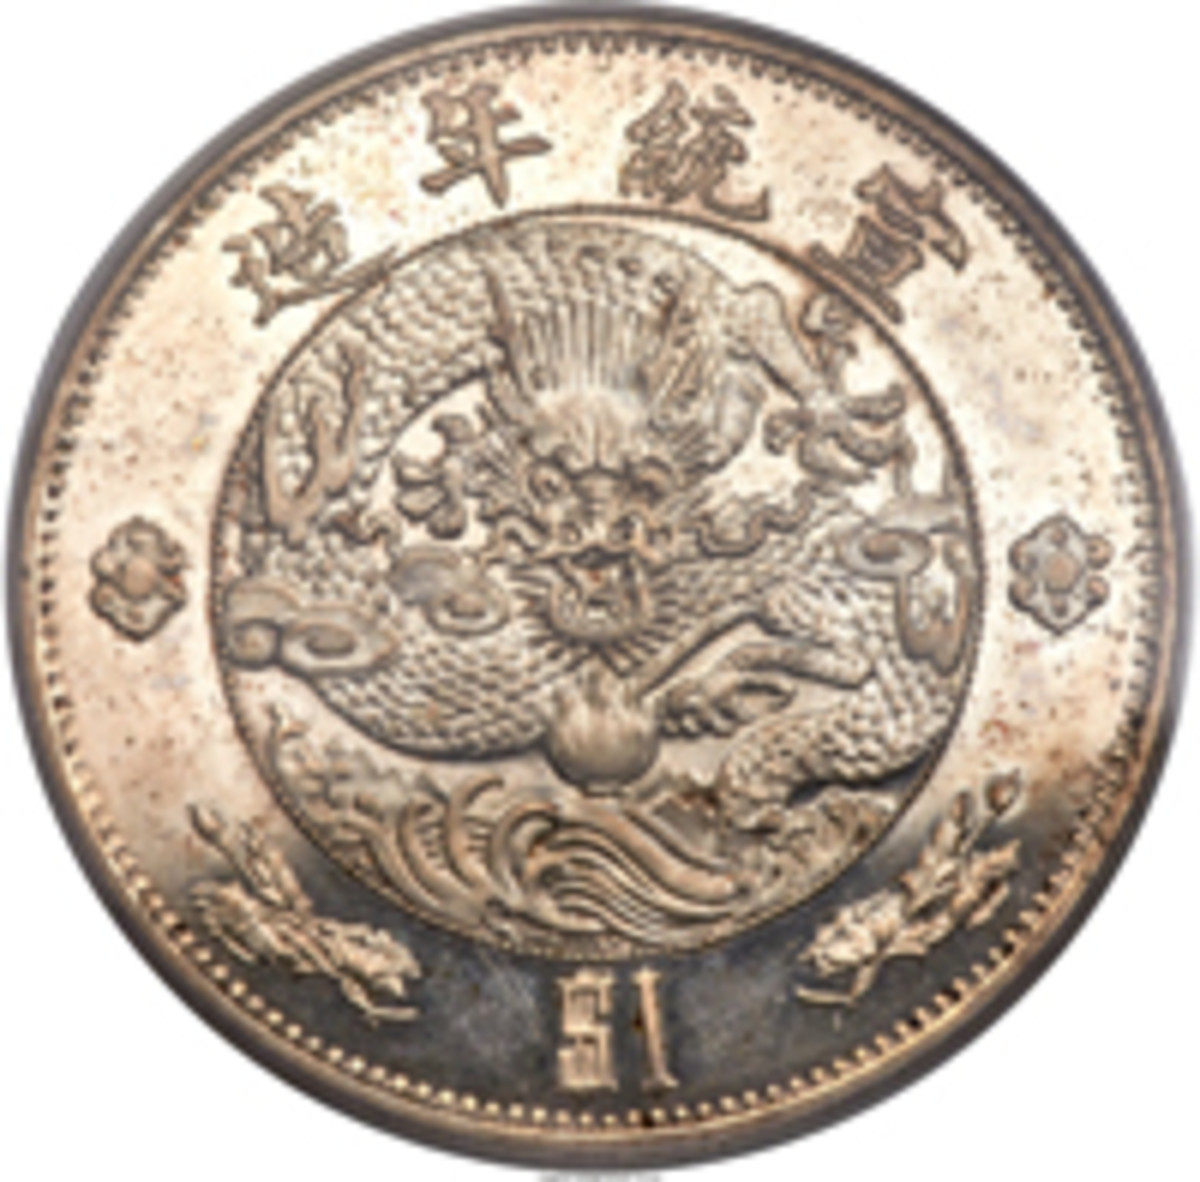 Probably unique imperial silver, uniface, proof pattern Hsüan-t'ung (Xuan-tong) dollar of 1910 that was bid-up to $50,190 in PR-64 PCGS. (Image courtesy and © www.ha.com)